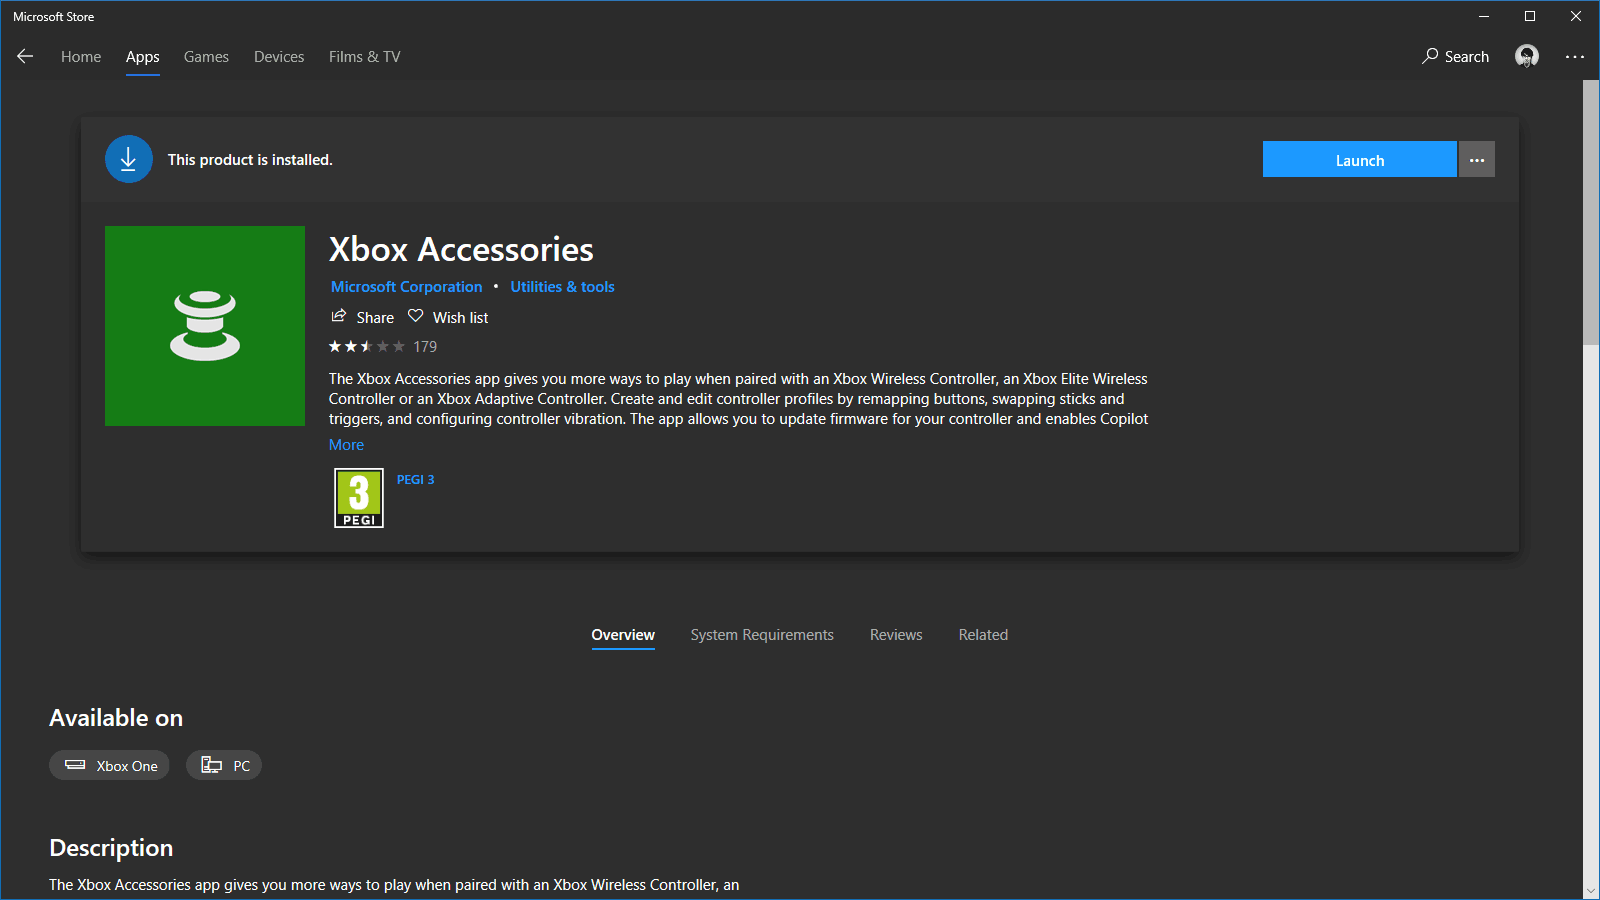 Xbox Accessories in the Windows Store